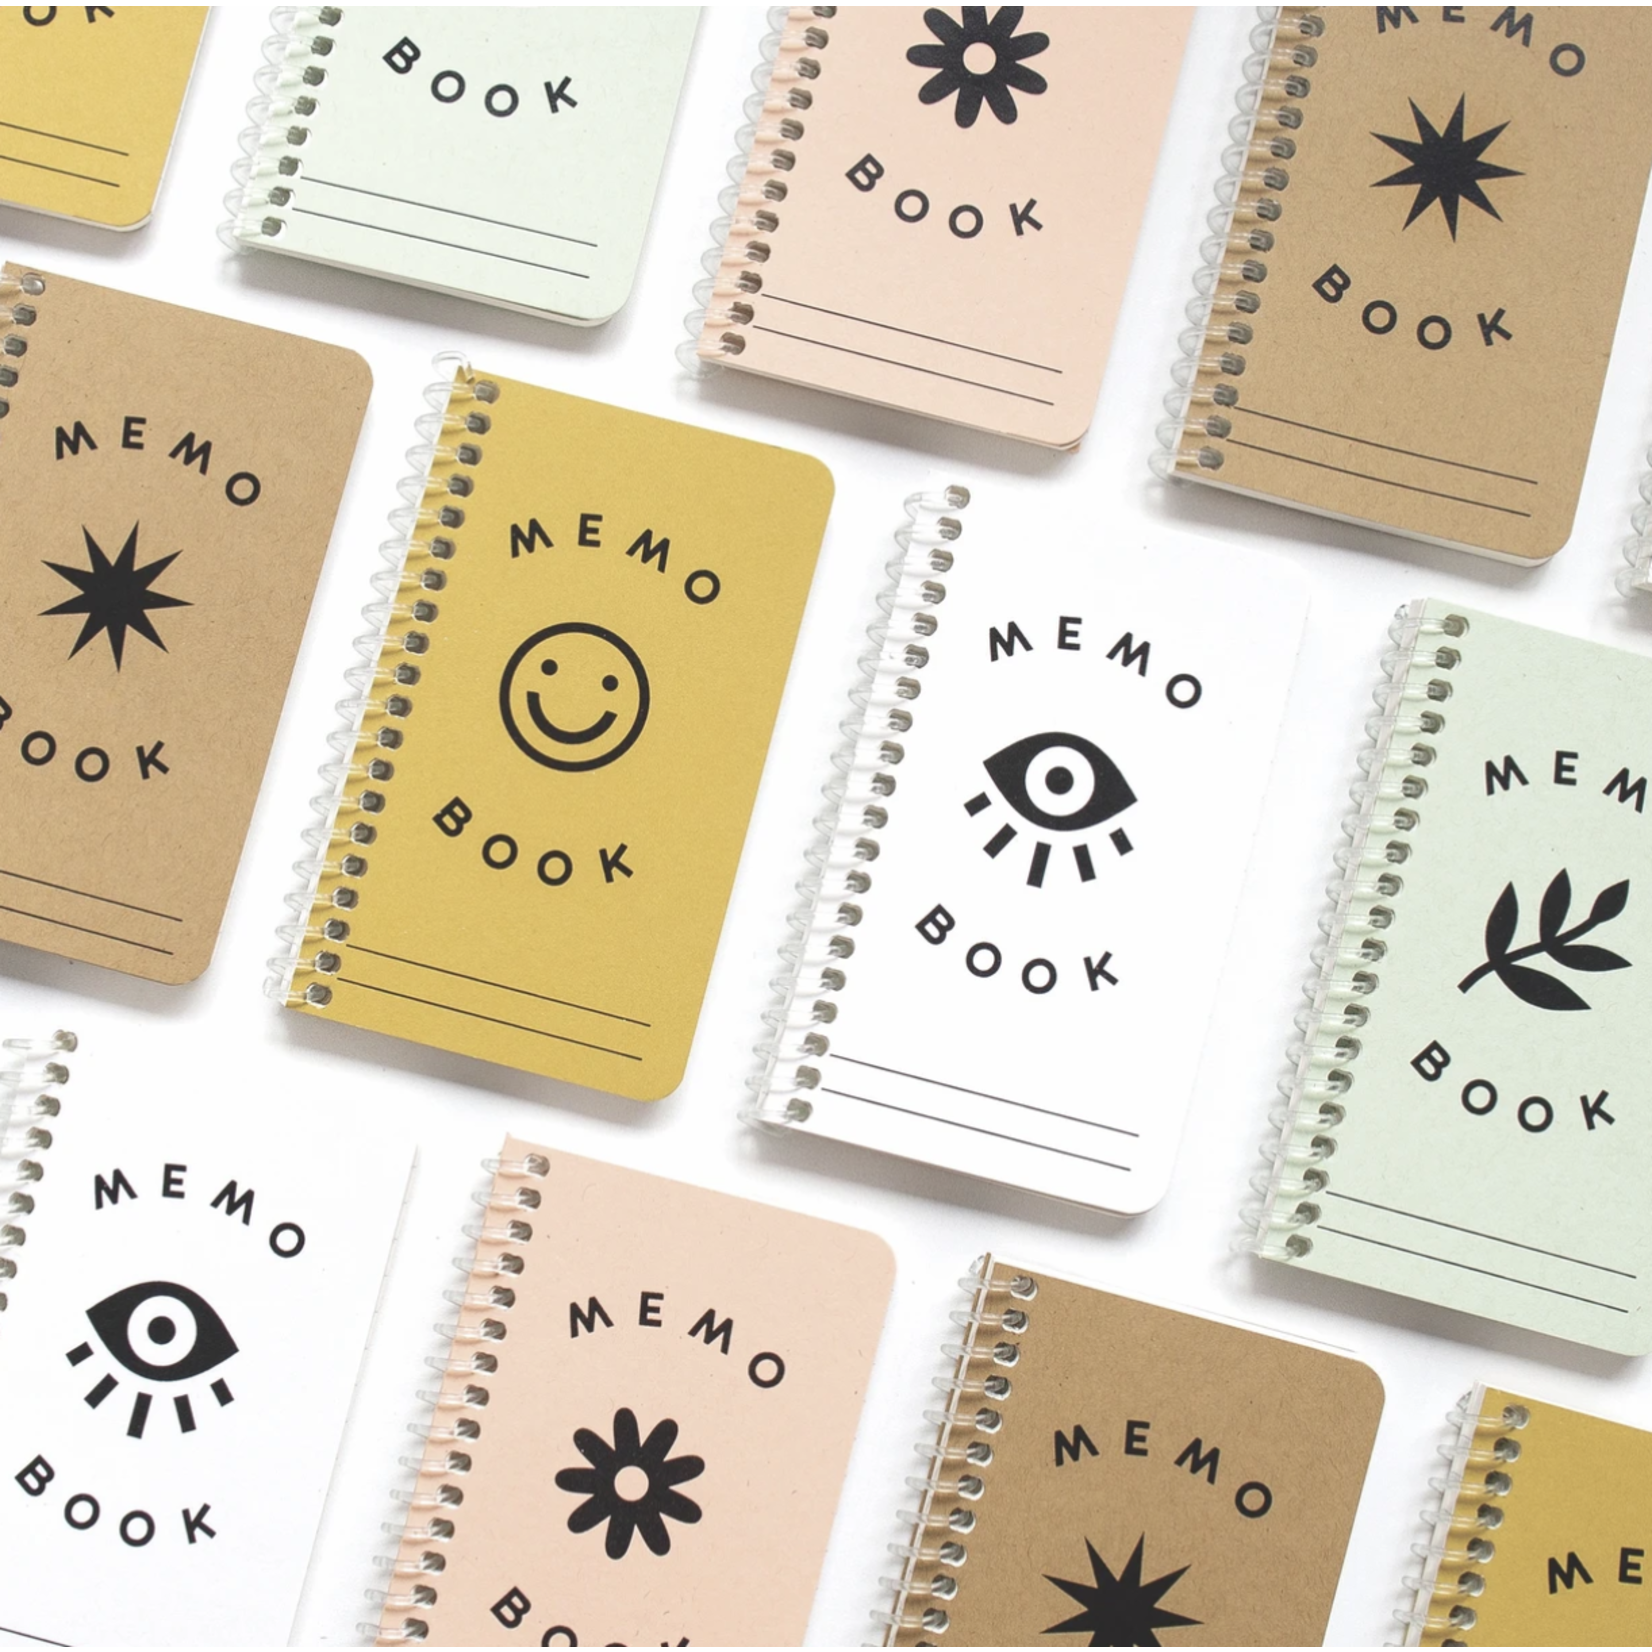 Worthwhile Paper Tiny Spiral Memo Books